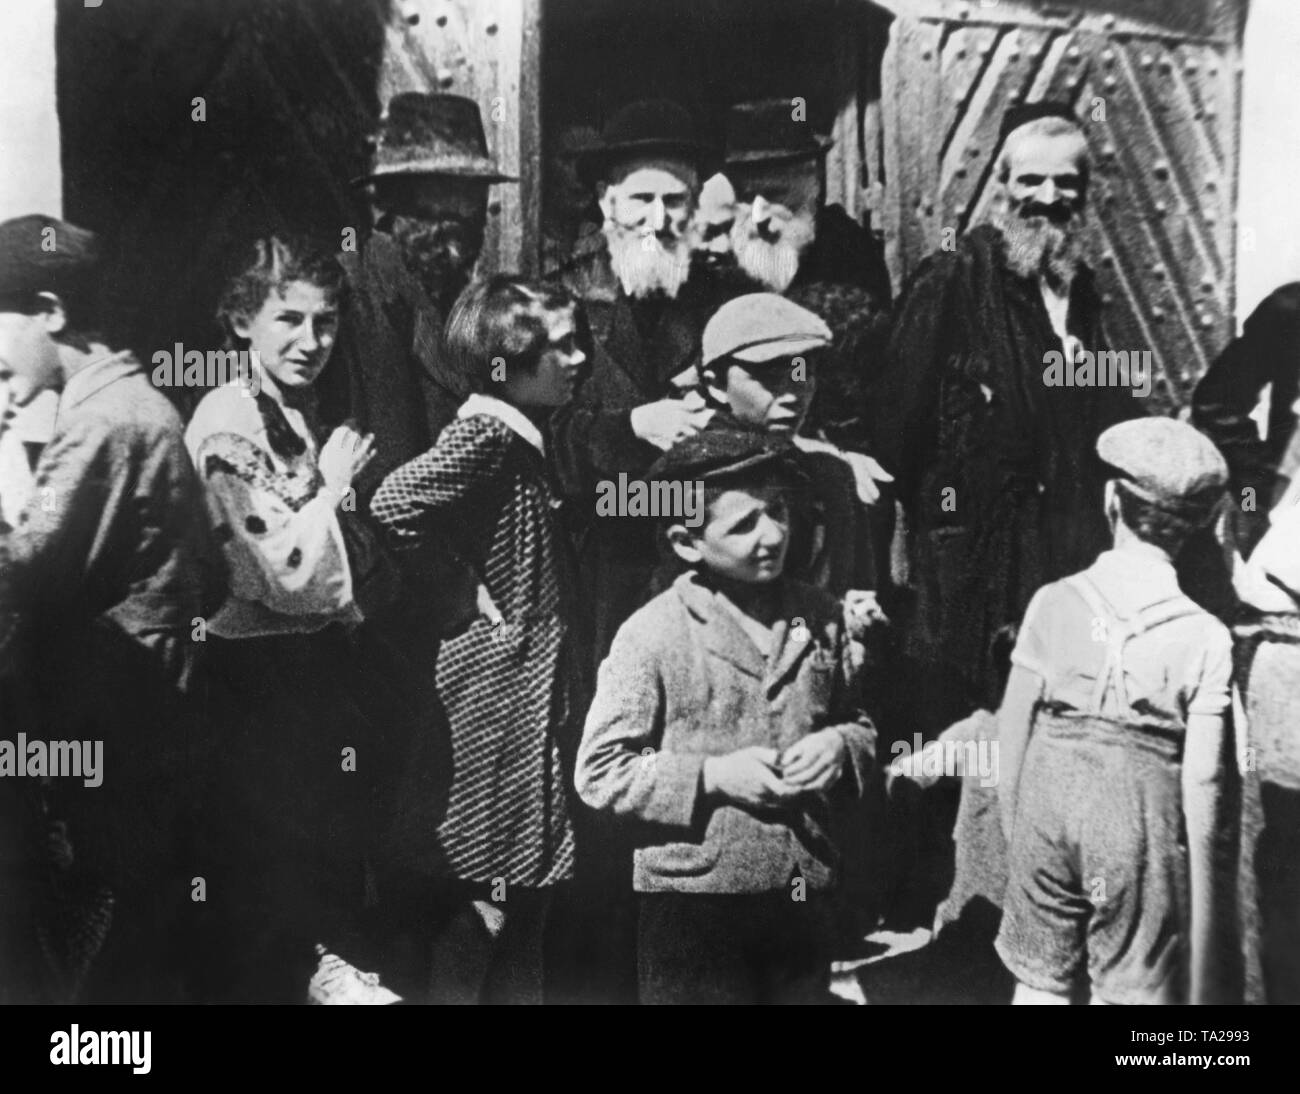 Scene from the Nazi propaganda film 'The Eternal Jew', directed by Fritz Hippler, Germany 1940. - Stock Image